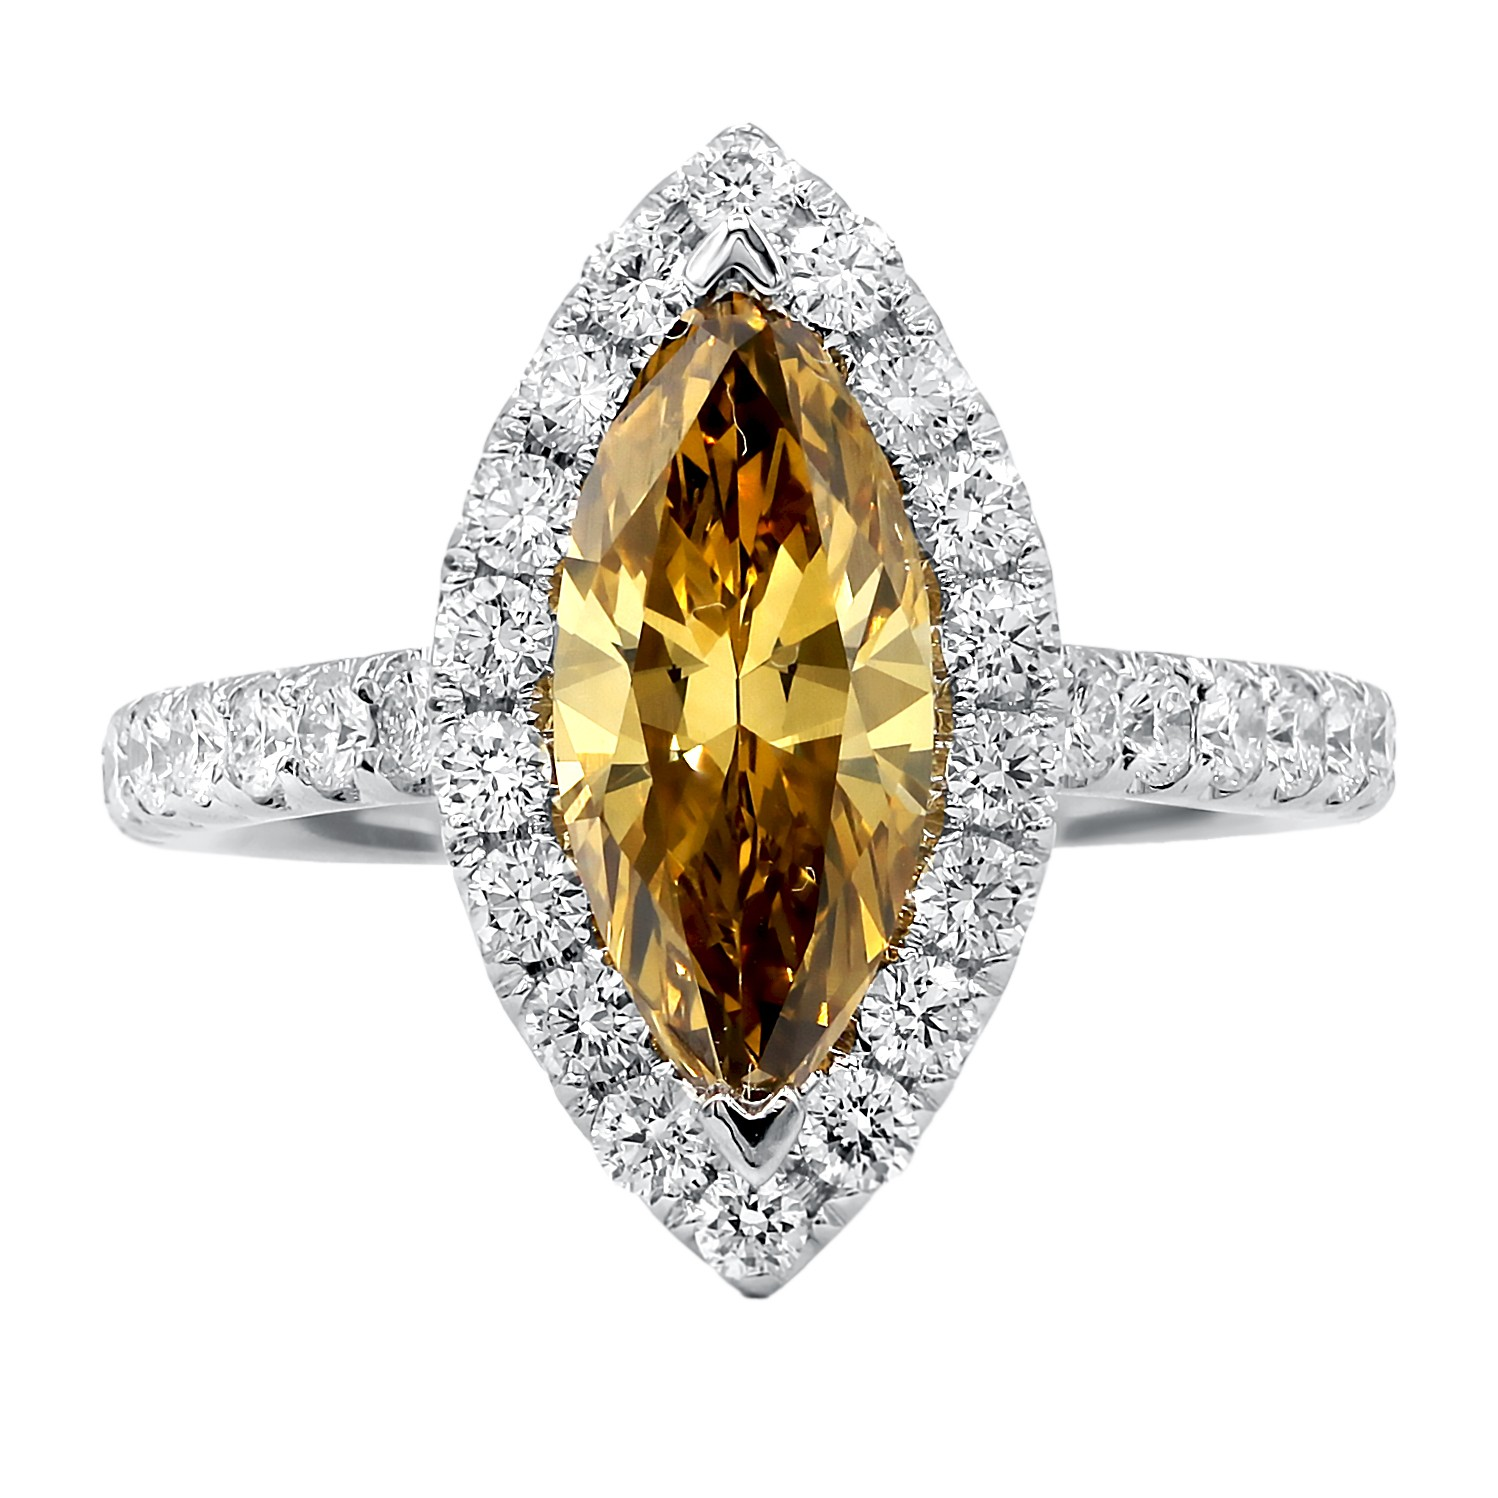 Exquisite Fancy Yellow-Brown Diamond enagement ring